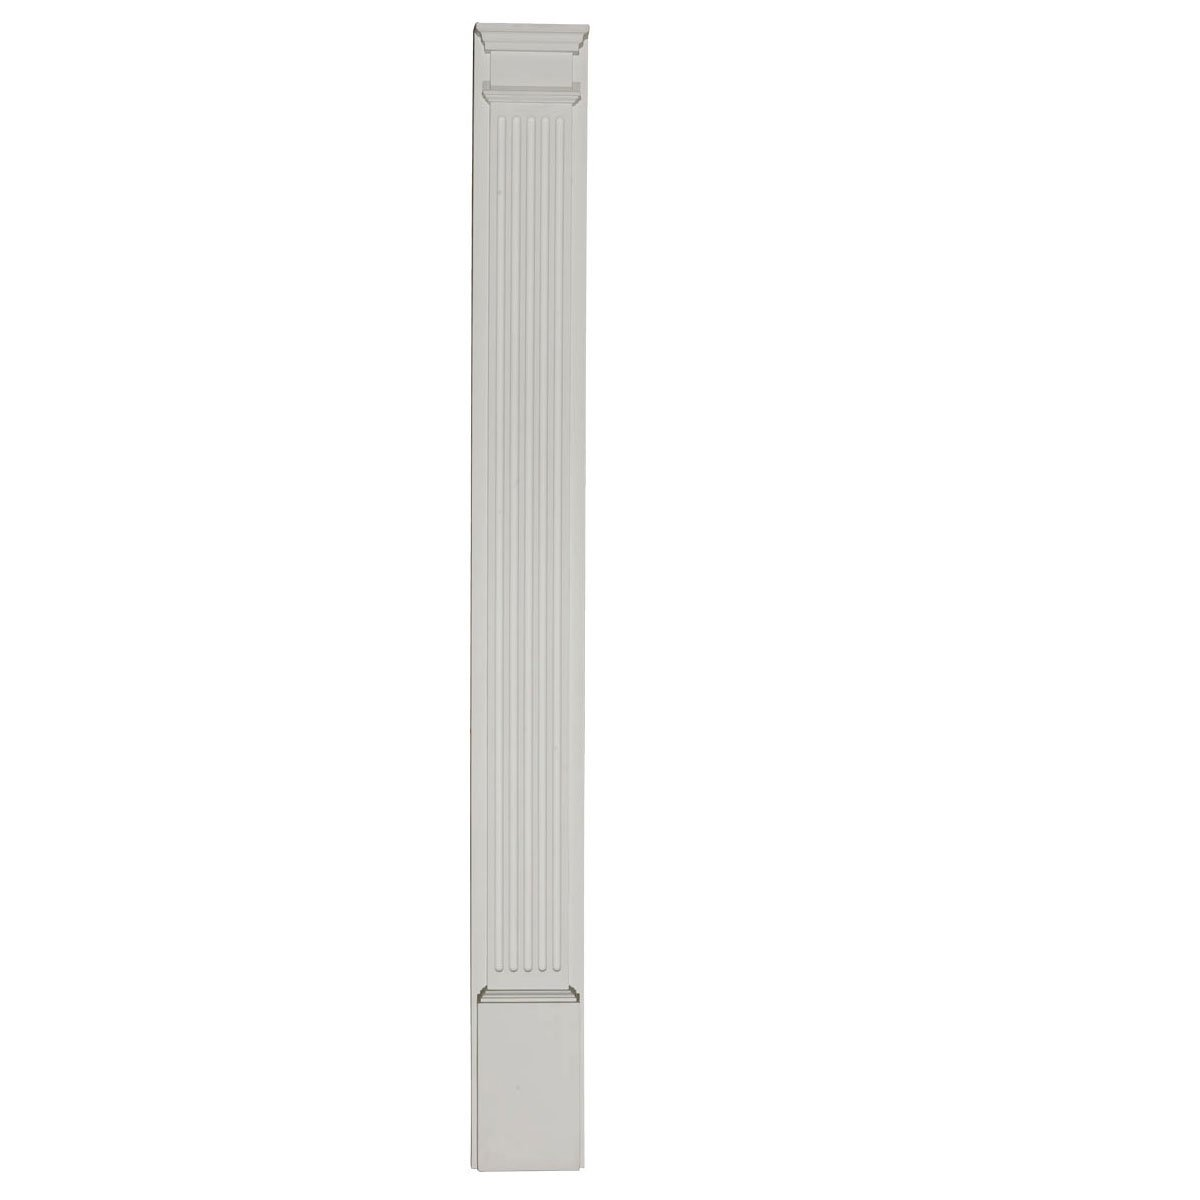 Ekena Millwork PIL09X90X02 9-Inch W x 90-Inch H x 2 3/4-Inch D with 14-Inch Attached Plinth, Fluted Pilaster